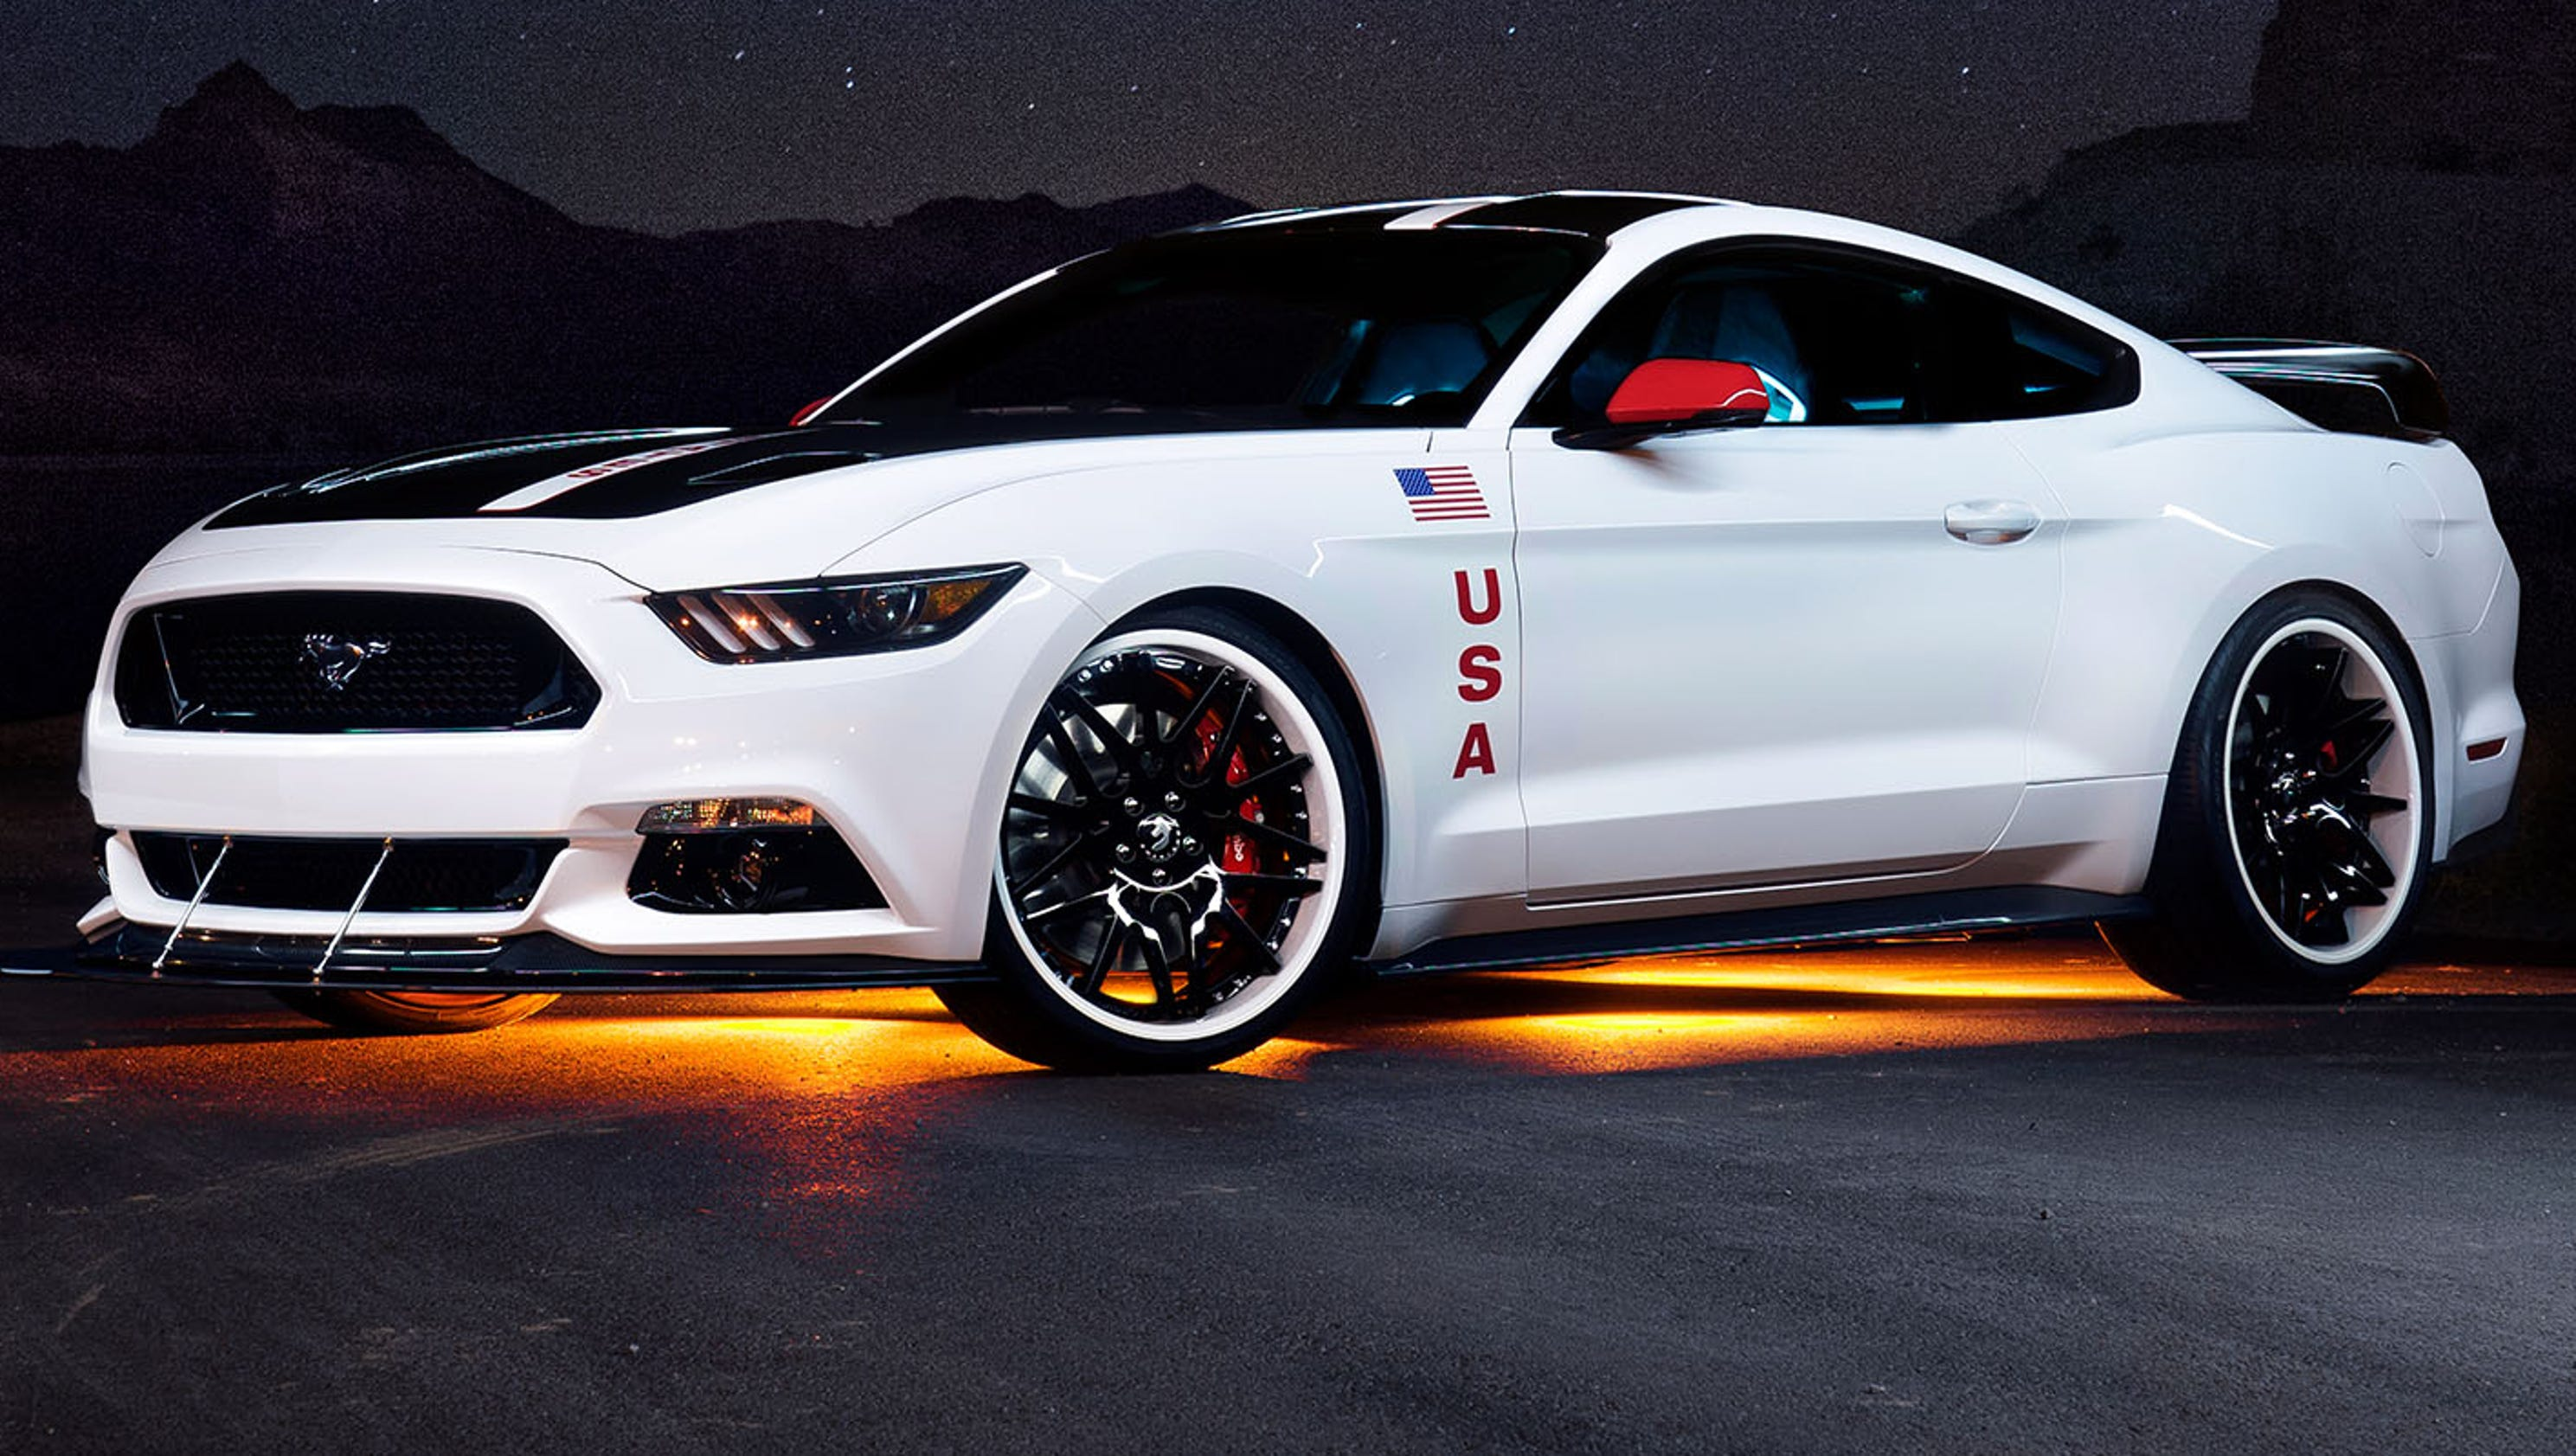 eaa ford mustang honors apollo moon missions. Black Bedroom Furniture Sets. Home Design Ideas